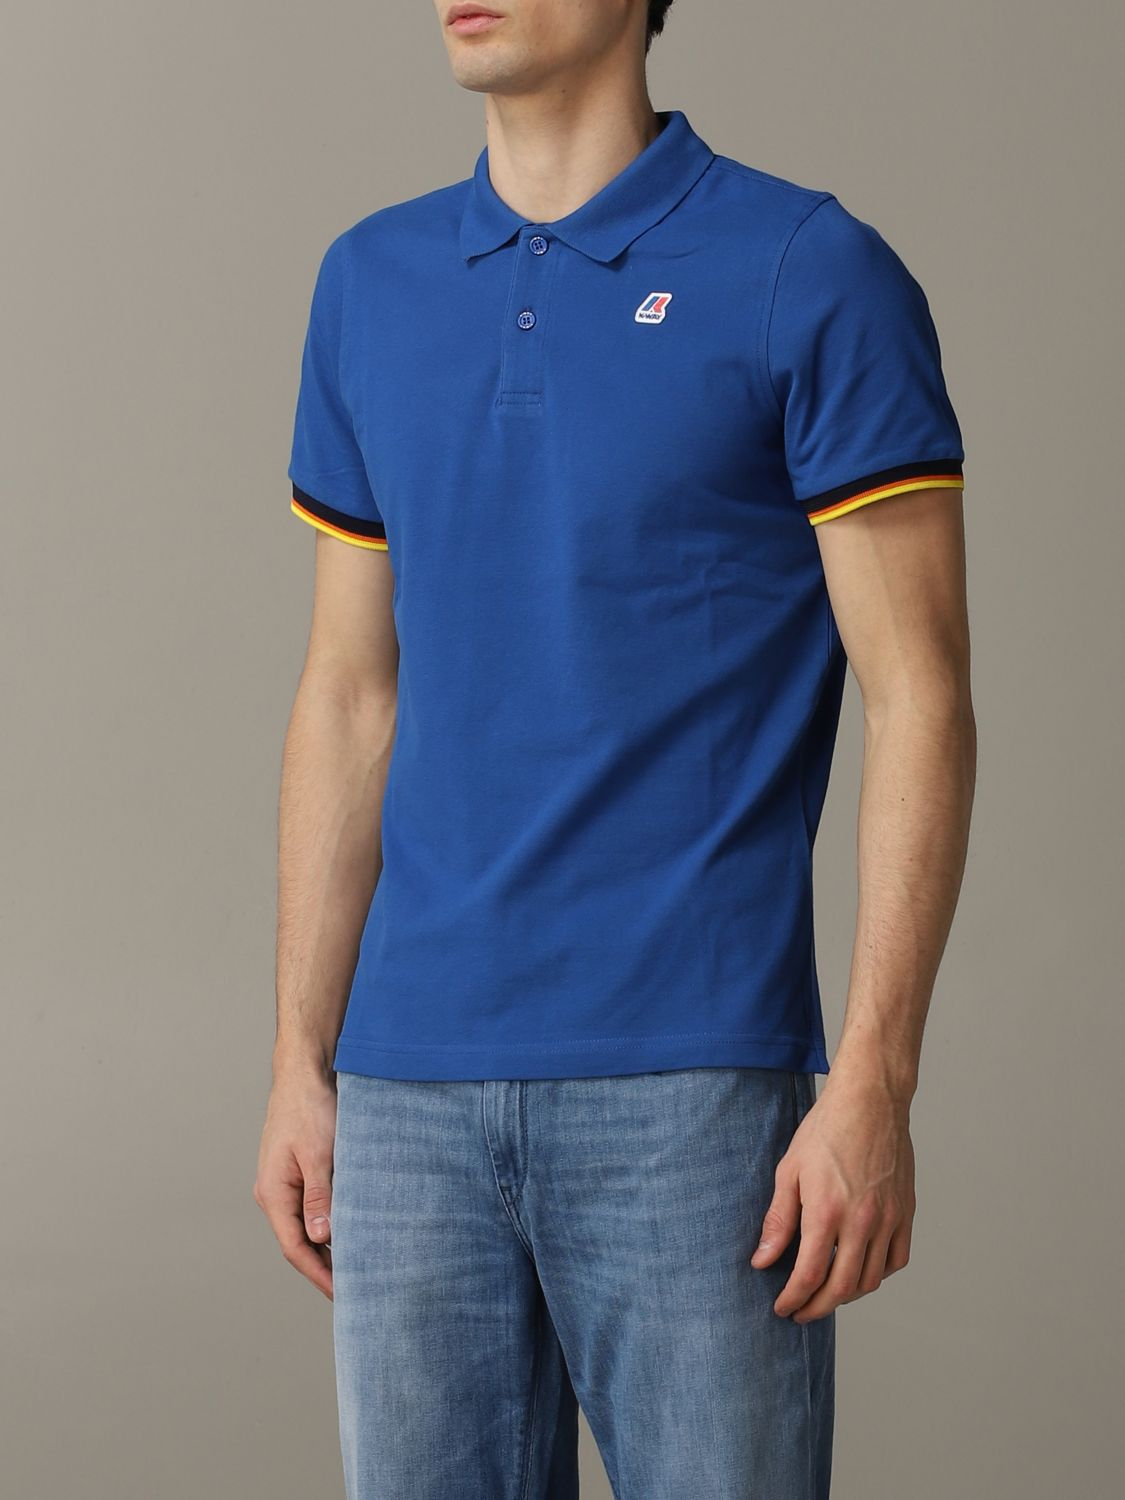 Polo herren K-way royal blue 4